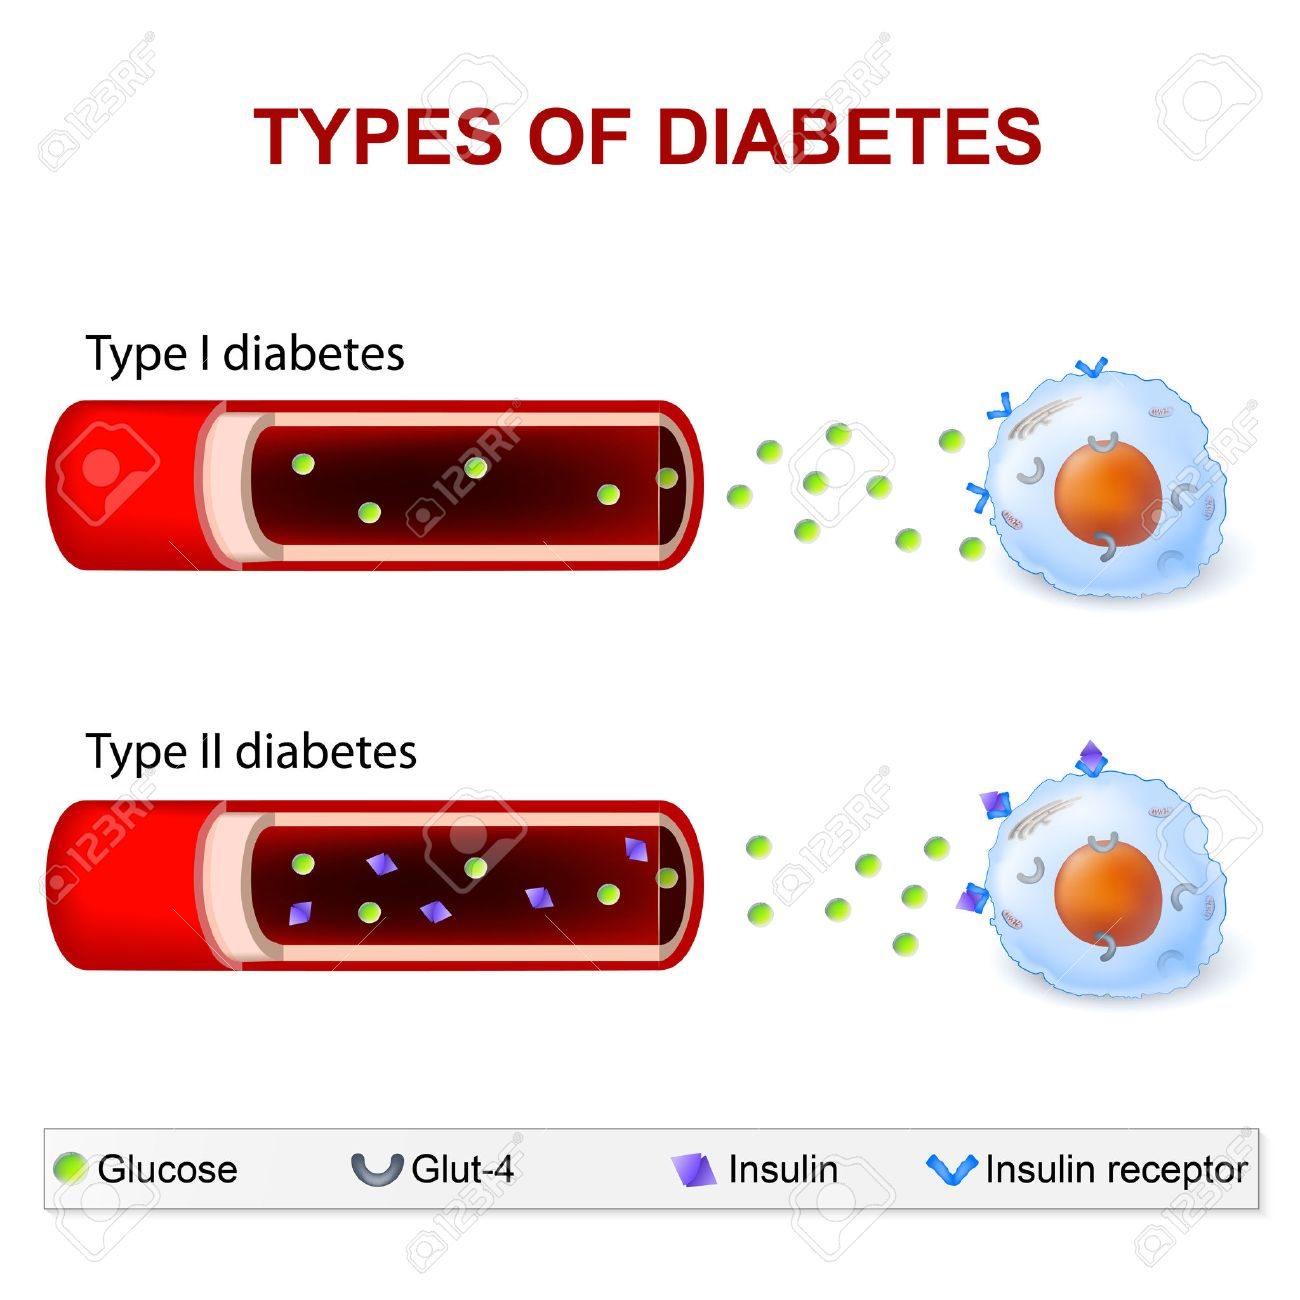 gevolgen diabetes mellitus type 2